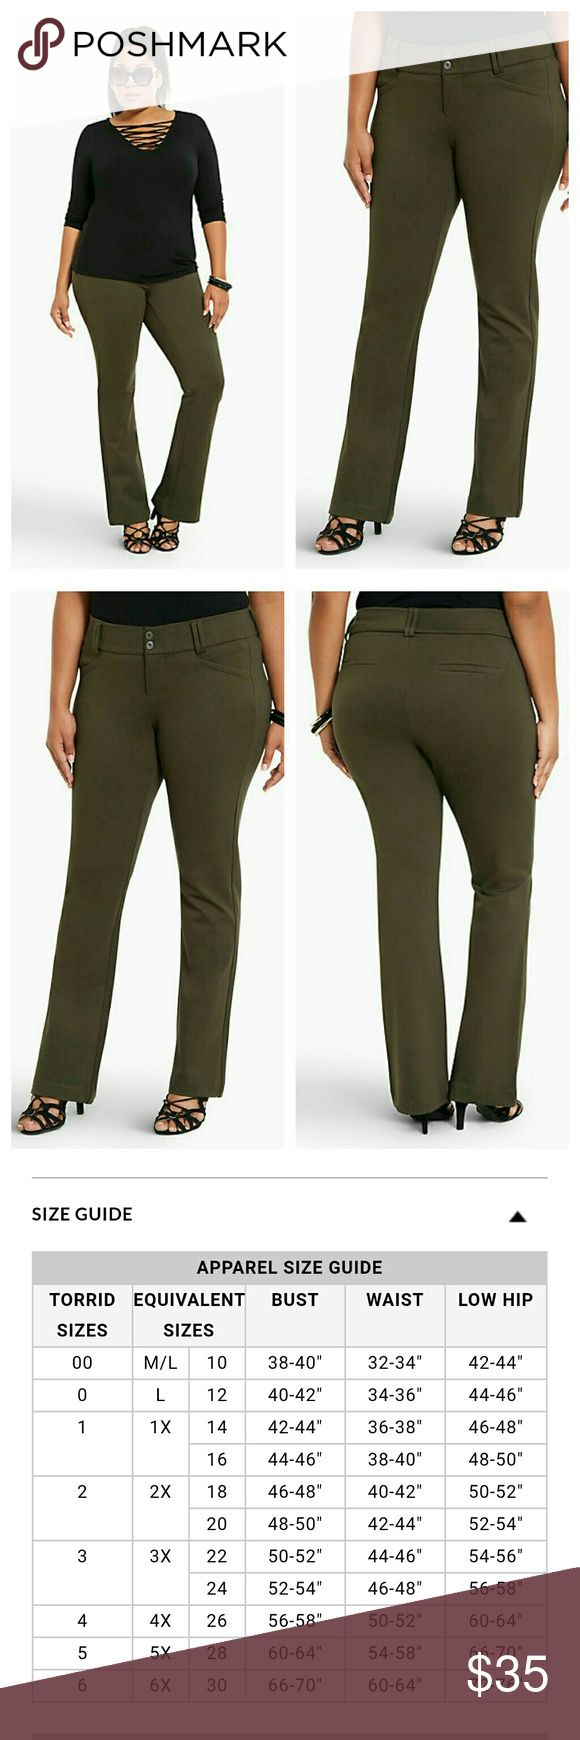 """Torrid Slim Boot Pant - Olive All-Nighter Ponte 18 Brand new!    This Slim Boot pant actually has us excited for work on Monday! The desk-ready style keeps it cool in wrinkle-free, power stretch, olive-colored All-Nighter ponte. We love the slimming, streamlined silhouette of the two-button closure style, not to mention the leg-lengthening slight flare at the knee.  Mid-rise Size 18: 33"""" inseam, 21  1/2"""" leg opening Rayon/nylon/spandexWash cold, line dryImported plus size pantsNoir Pant…"""